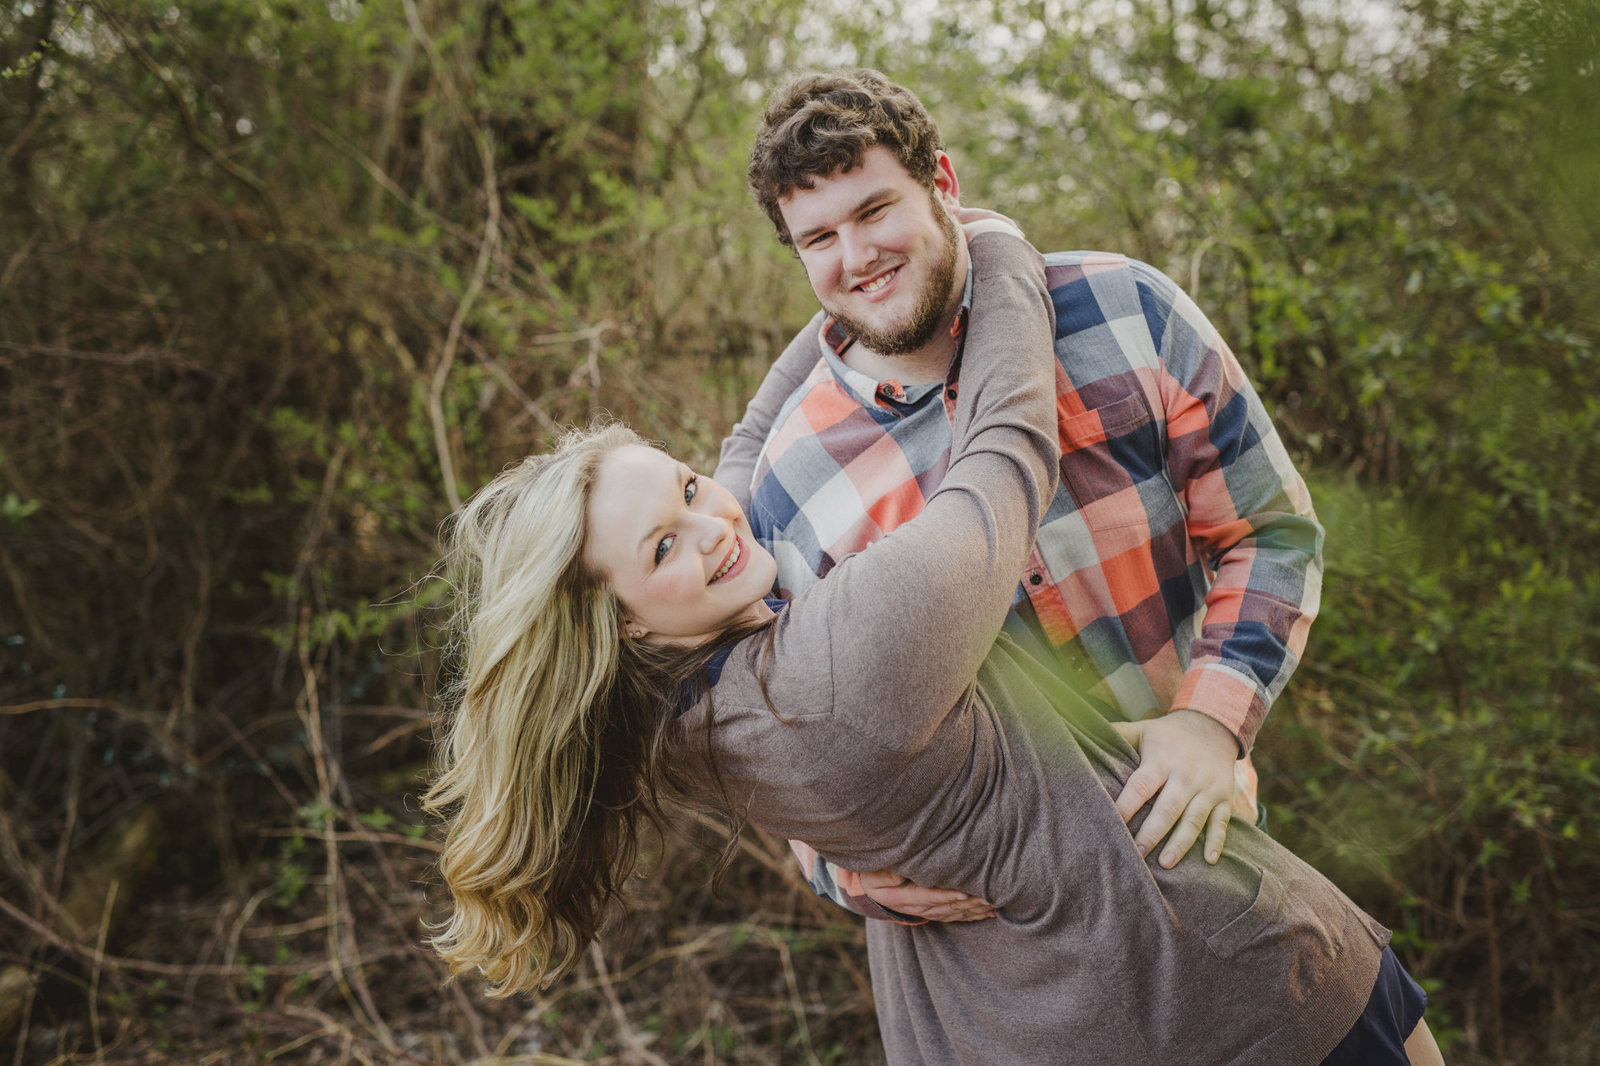 Nathan and Emily dance during their engagement session at Meadow Hill Farm in Columbia, Tennessee.